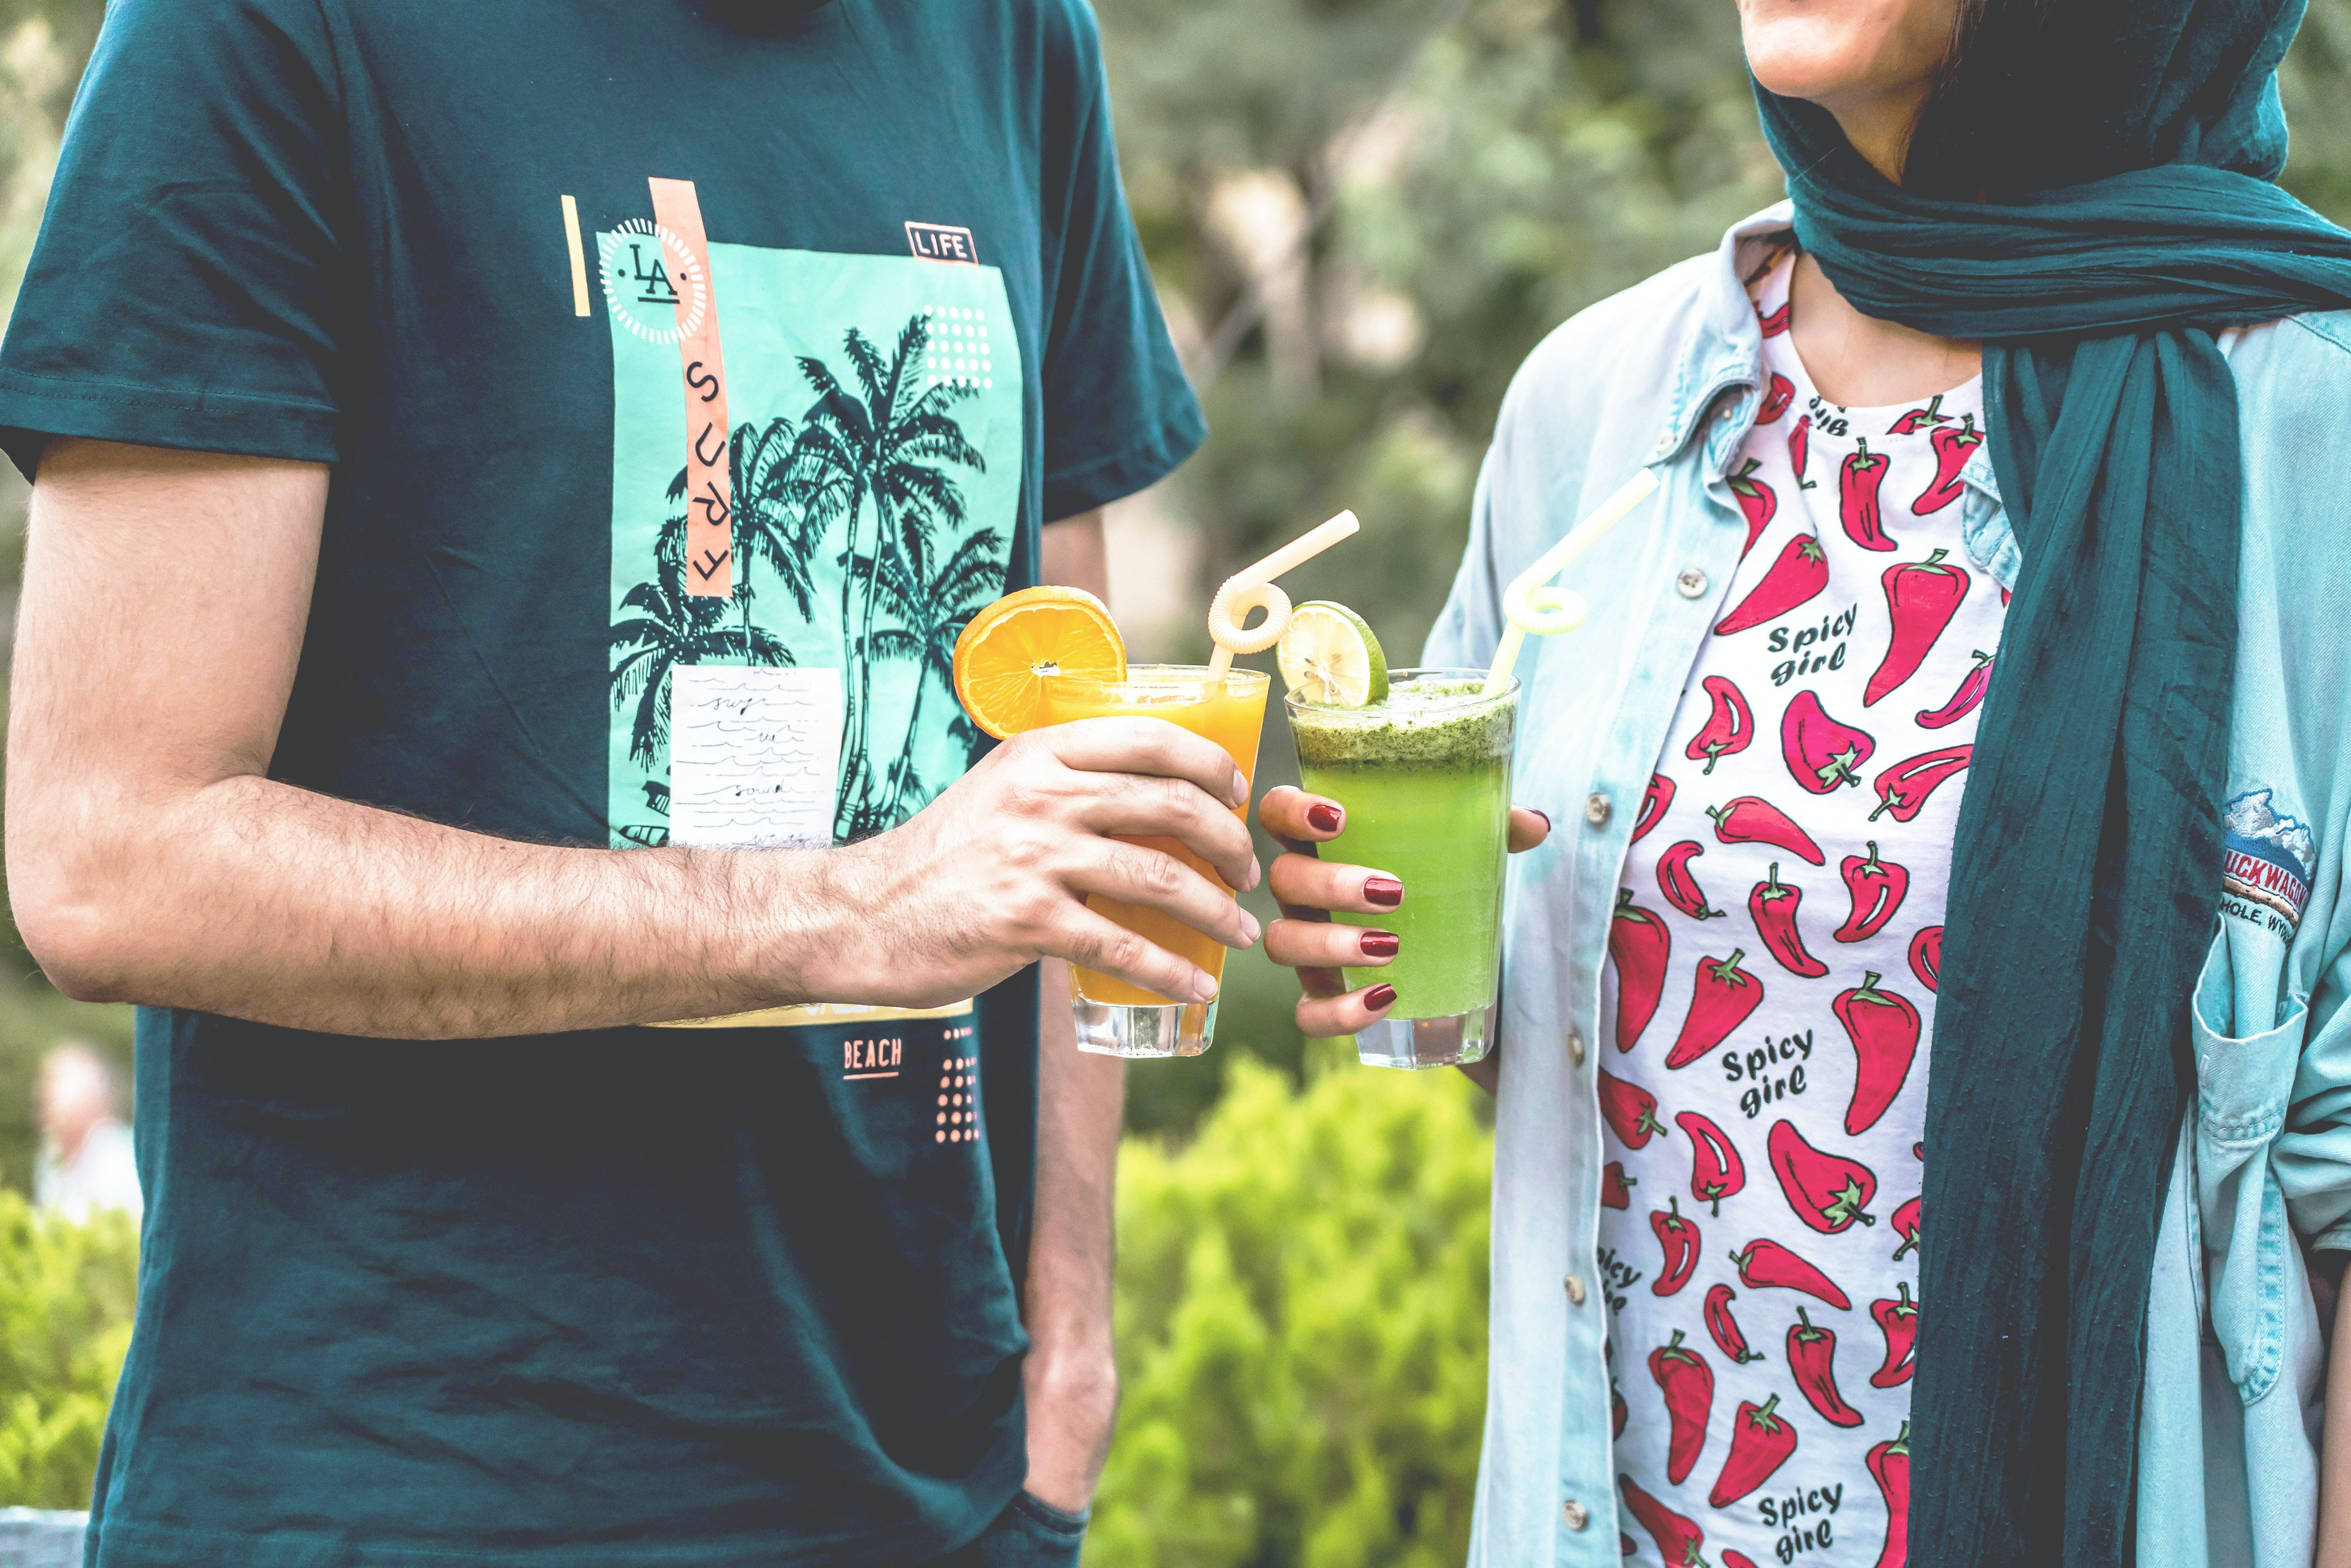 man and woman standing while holding drinking glasses during daytime